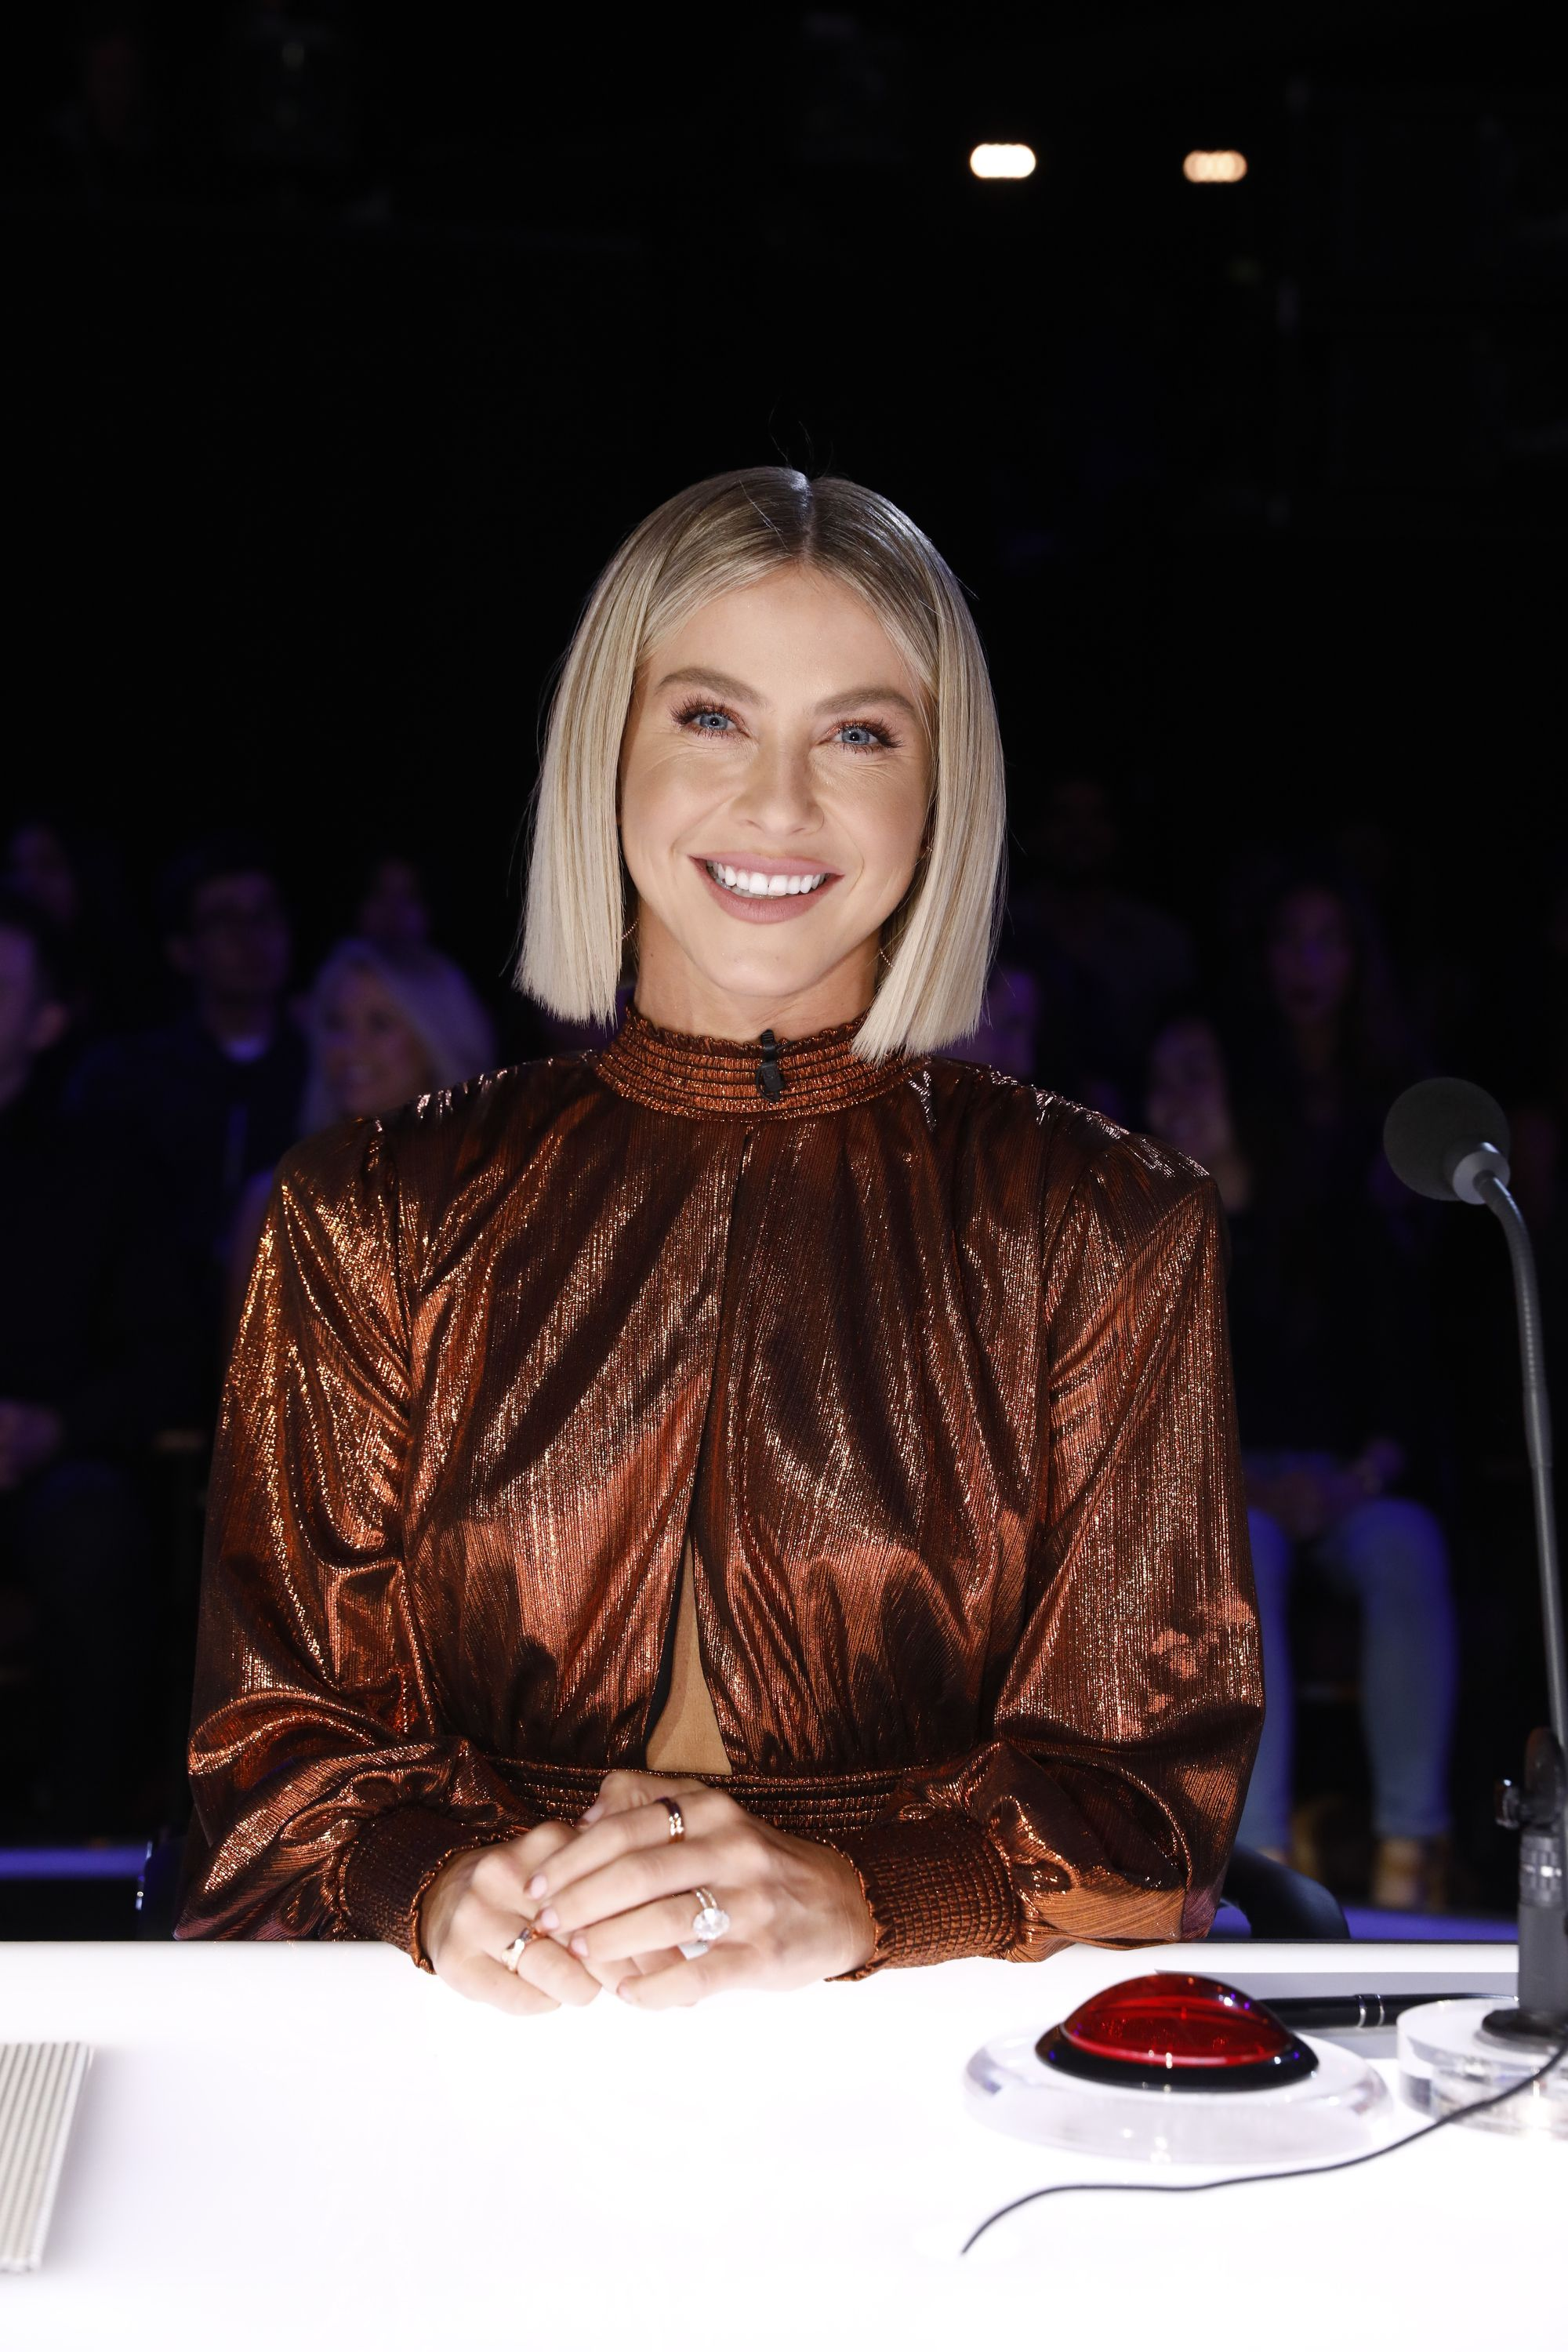 Julianne Hough Just Shared A Topless Instagram Ahead Of The 'America's Got Talent' Finale